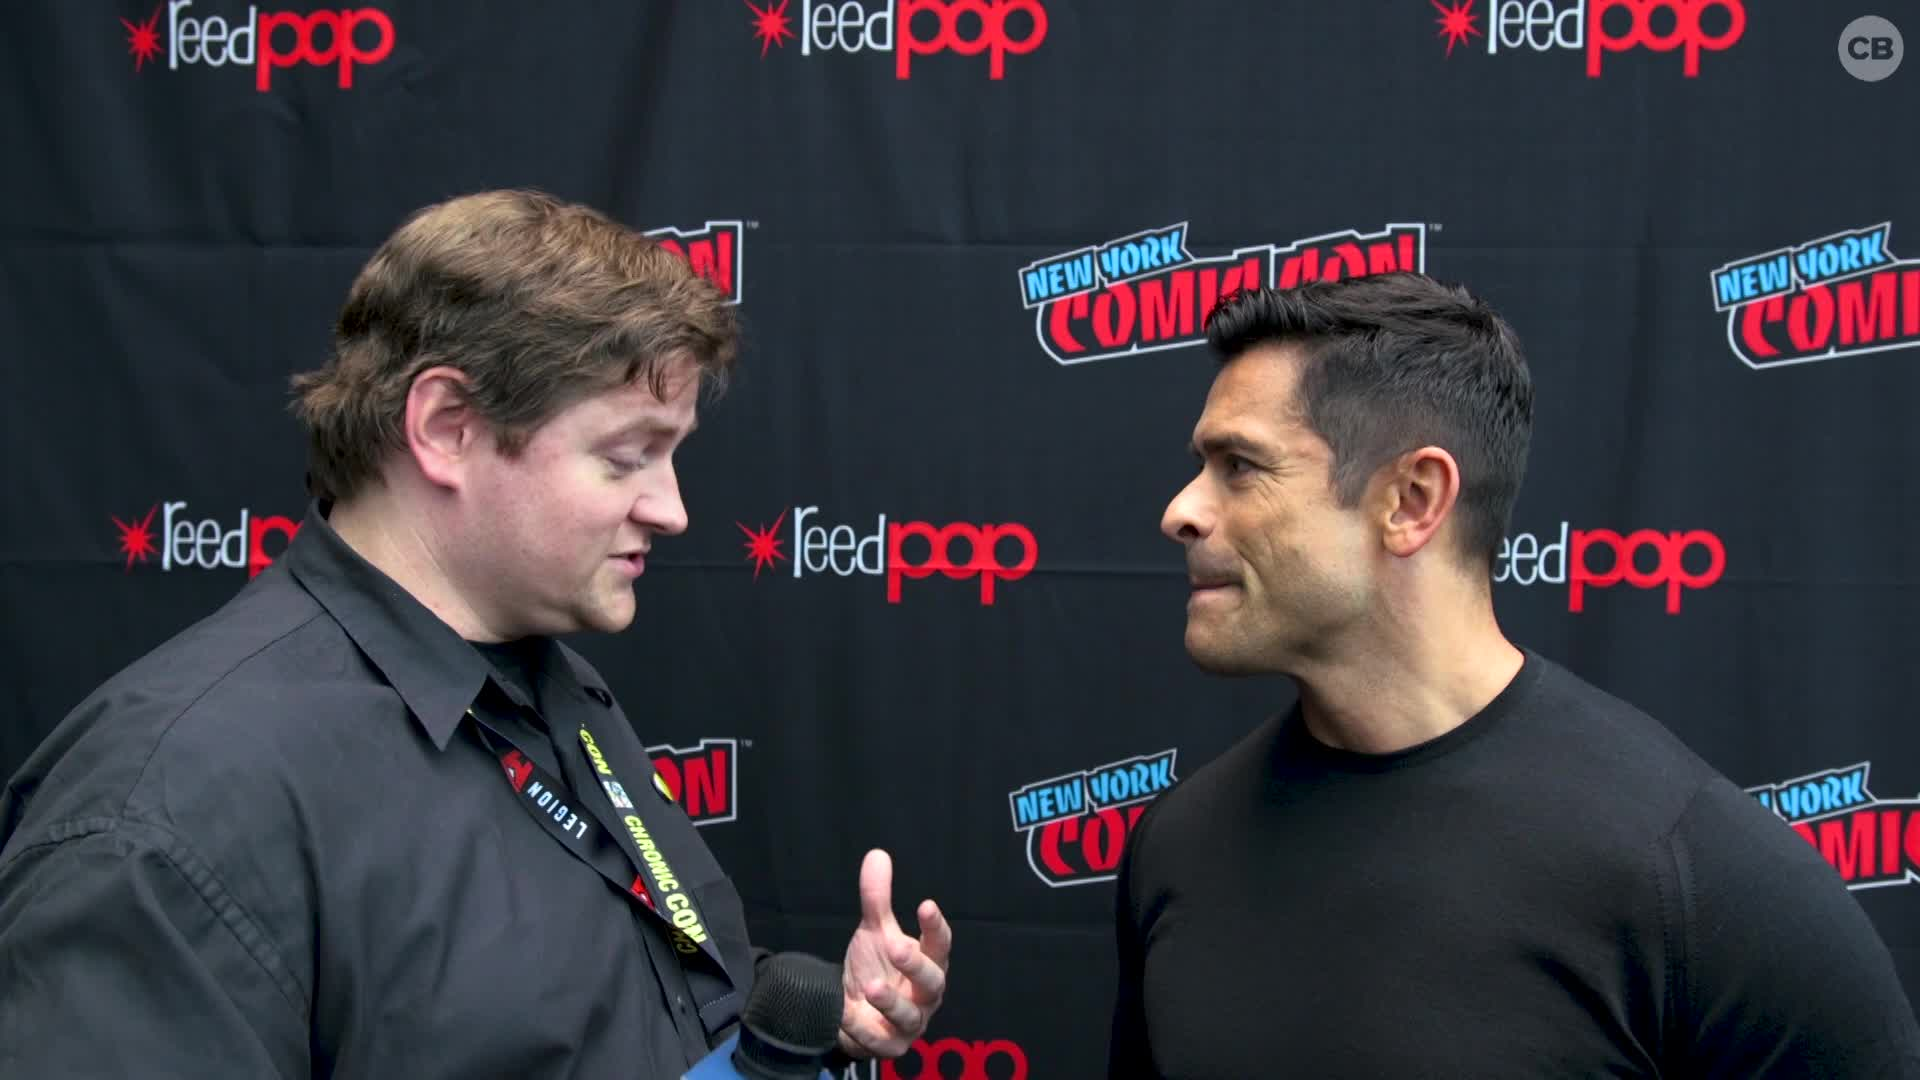 Mark Consuelos - NYCC 2019 Exclusive Interview screen capture